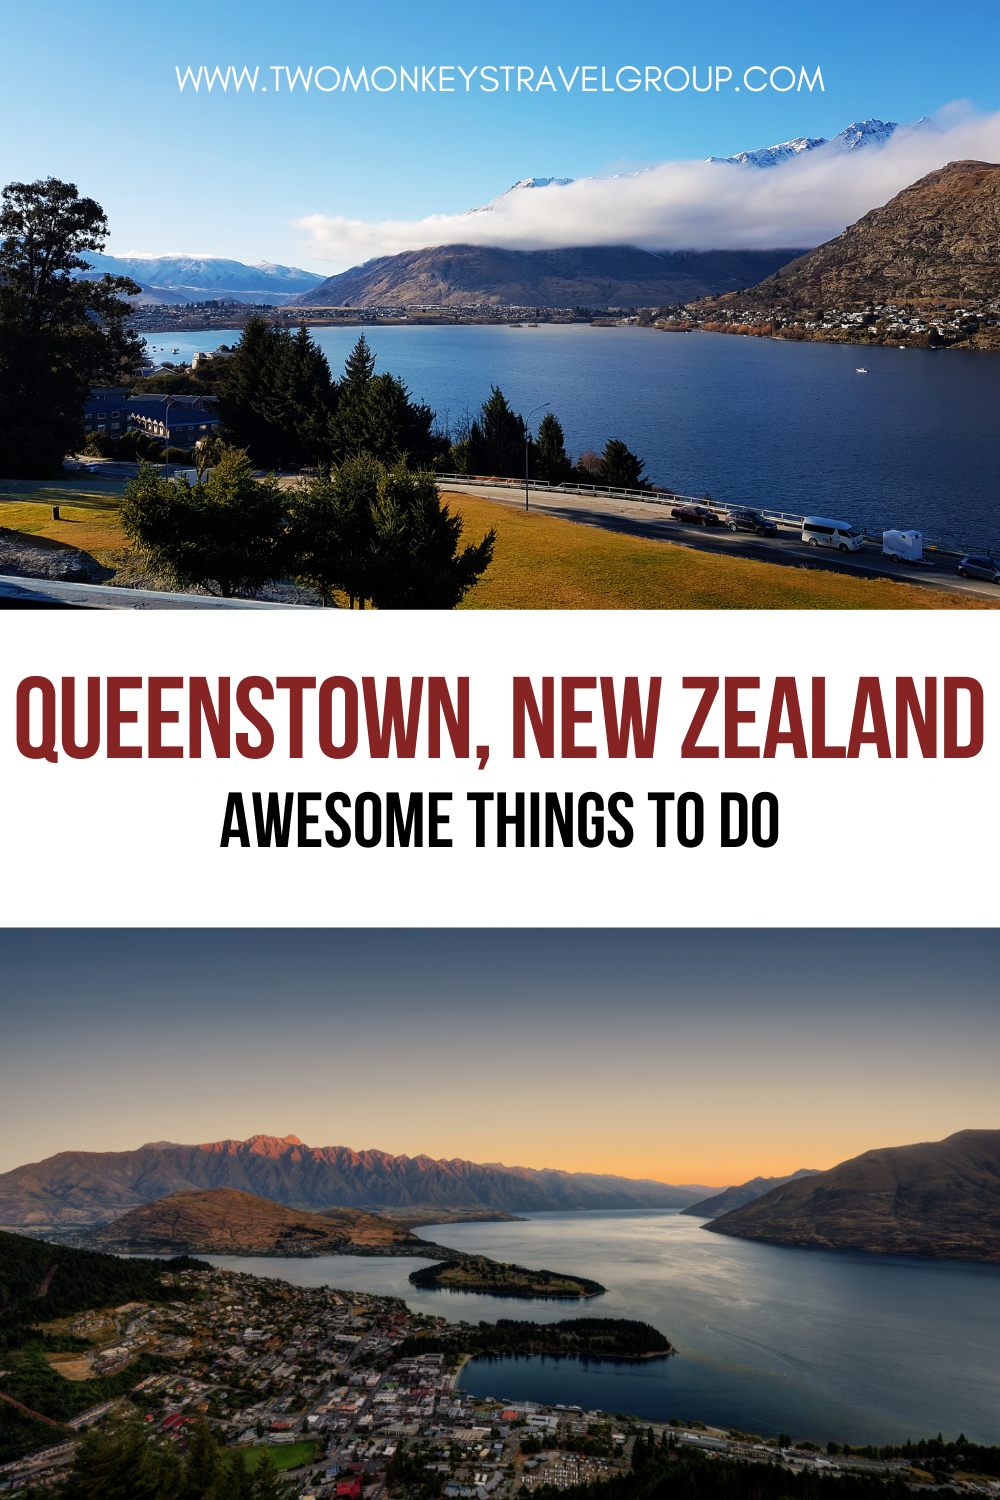 7 Awesome Things to do in Queenstown, New Zealand4